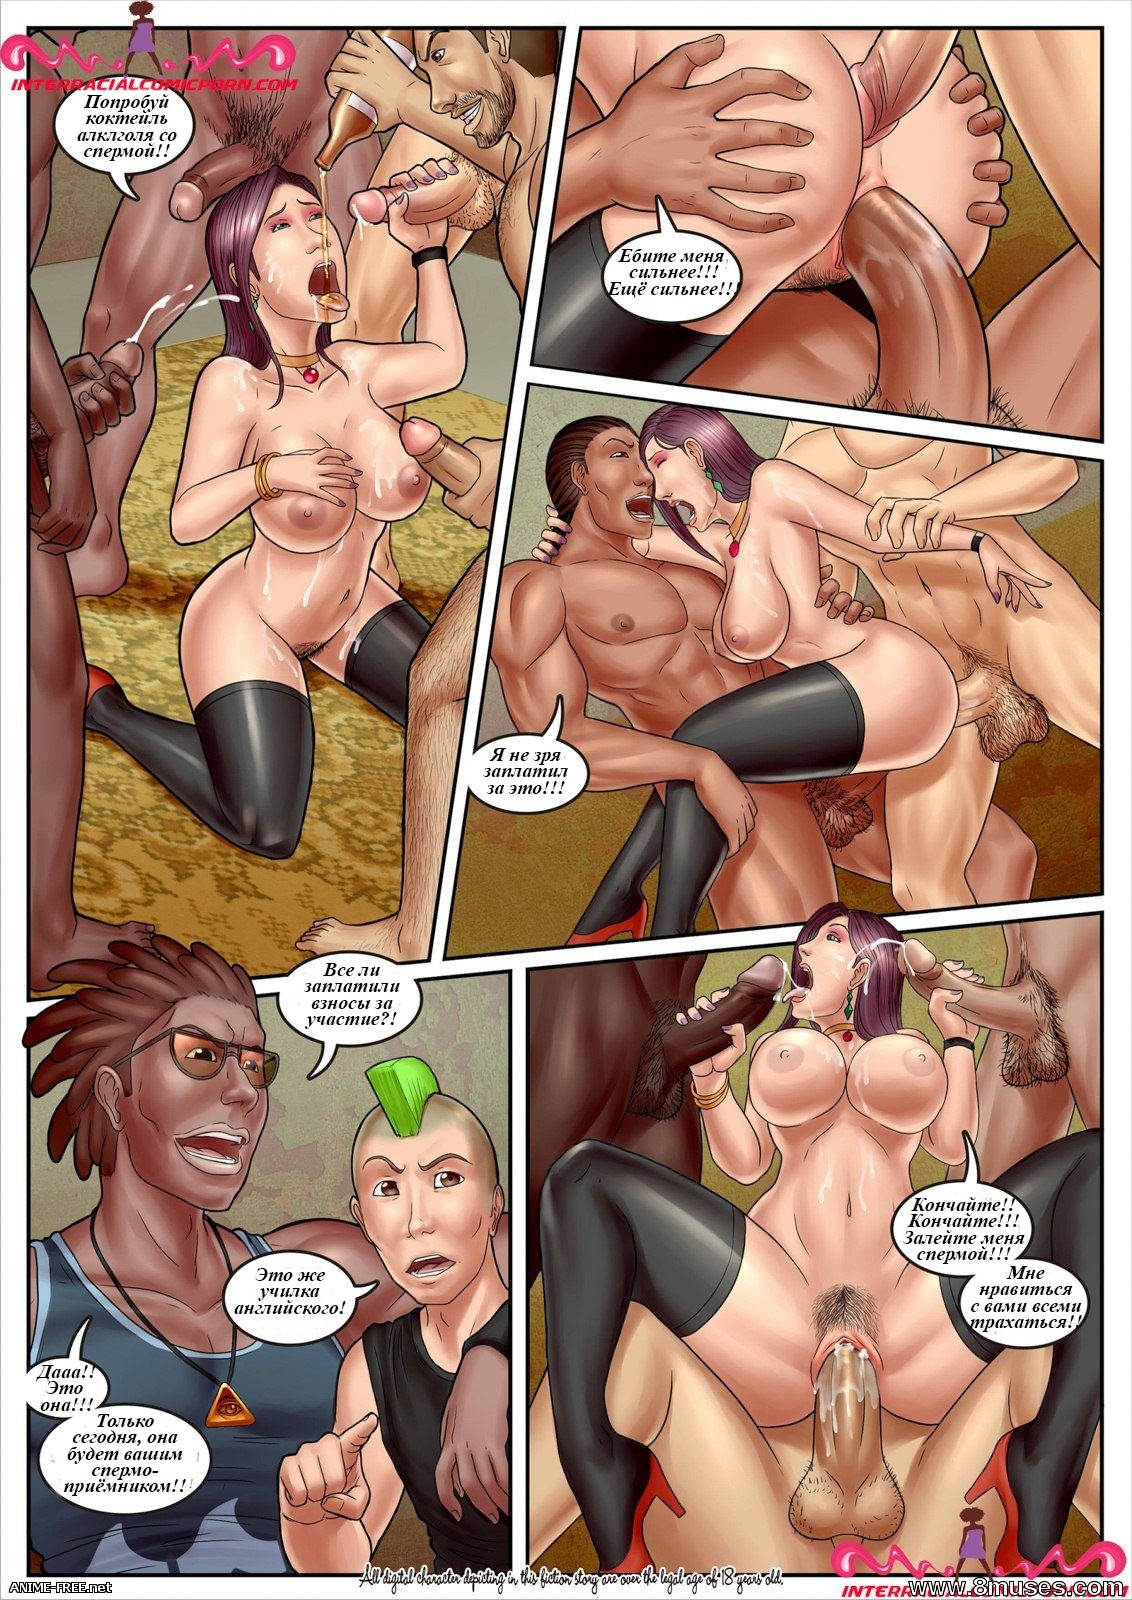 Sexwife & Cuckold. Часть - 5 (Part - 5) [Uncen] [RUS] Porn Comics